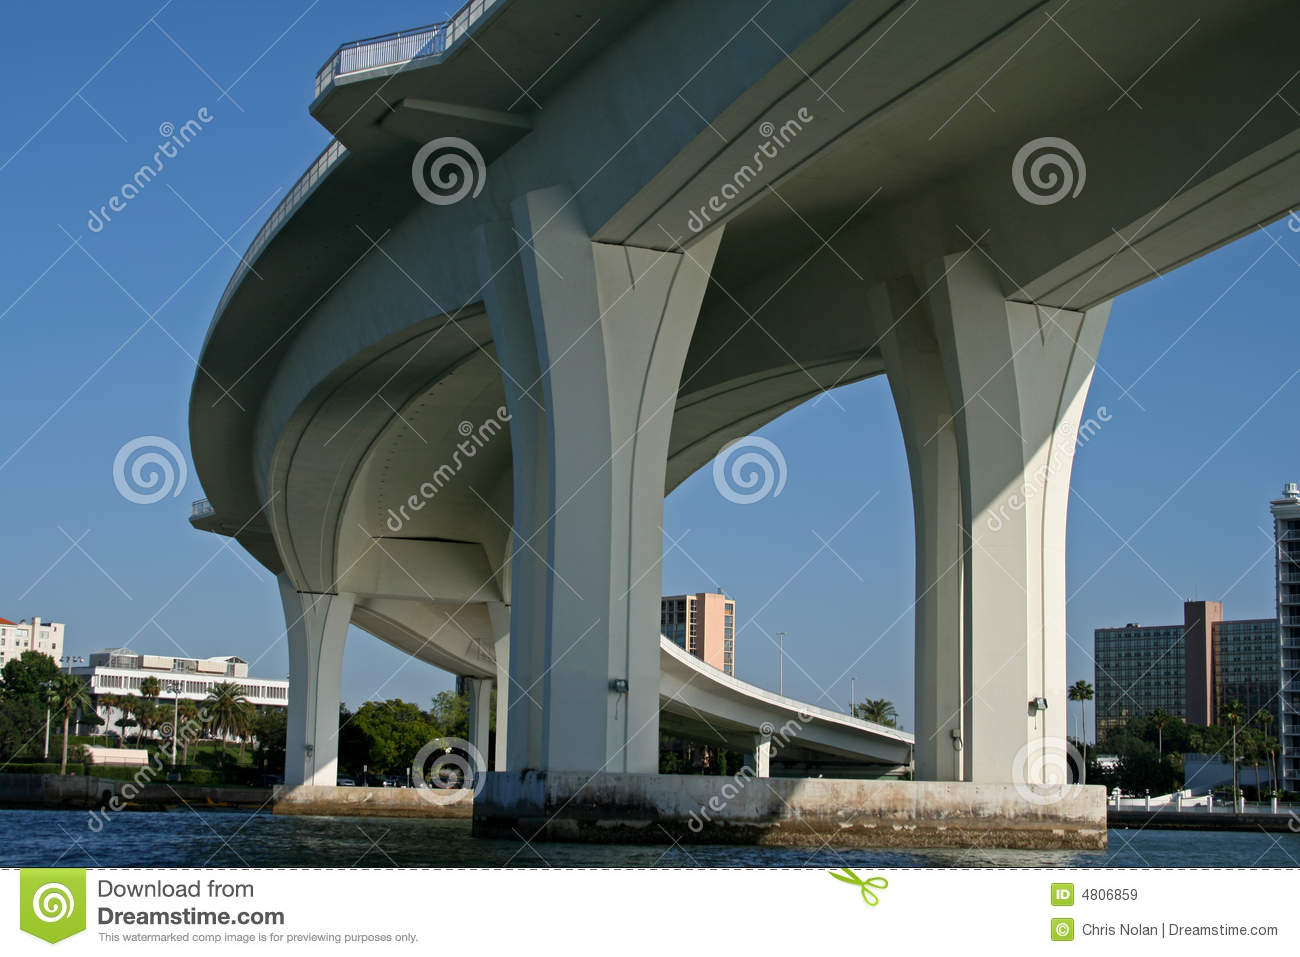 Underside Of Curved Concrete Bridge Support Royalty Free Stock Images Image 4806859